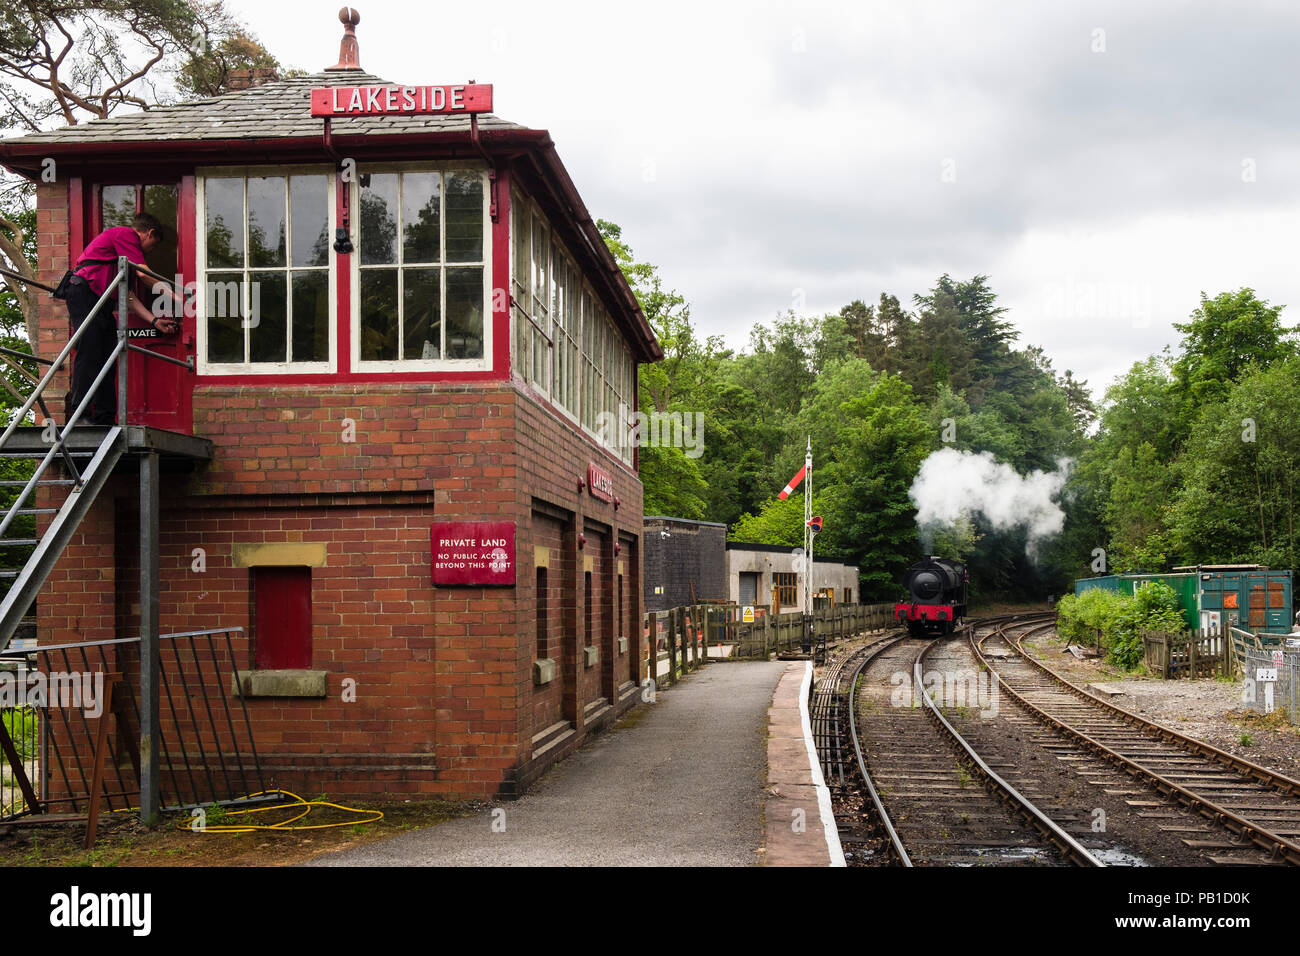 Steam train engine approaching Lakeside and Haverthwaite railway station signal box in Lake District National Park. Lakeside, Cumbria, England, UK - Stock Image